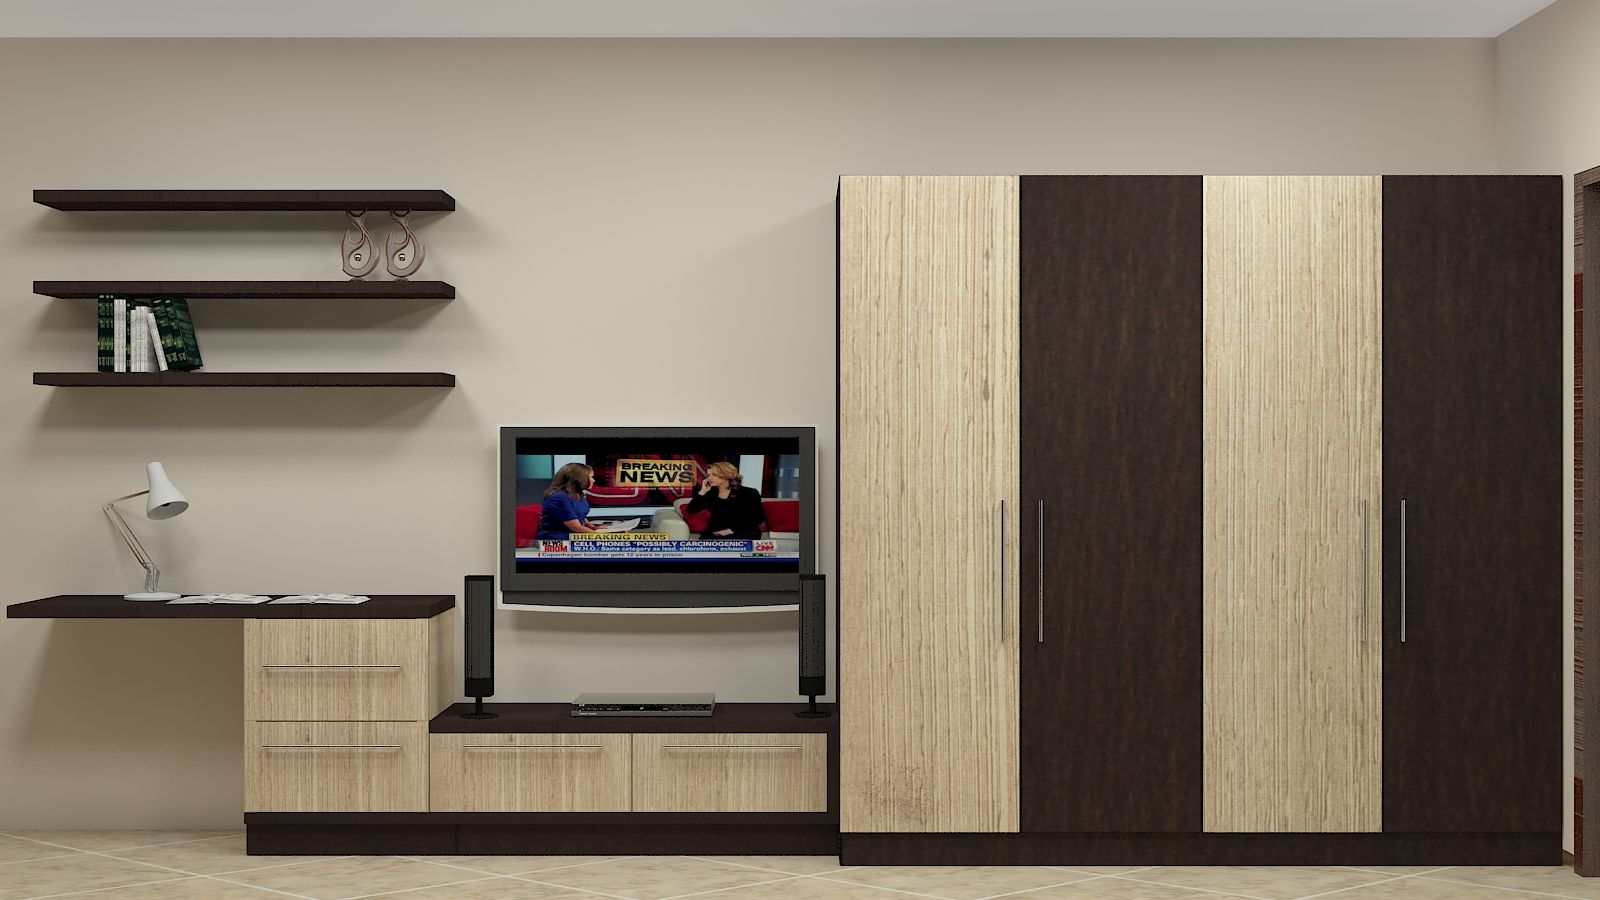 Image Result For Tv Units With Wardrobe Bedroom Rahul - Bedroom wardrobe designs with tv unit